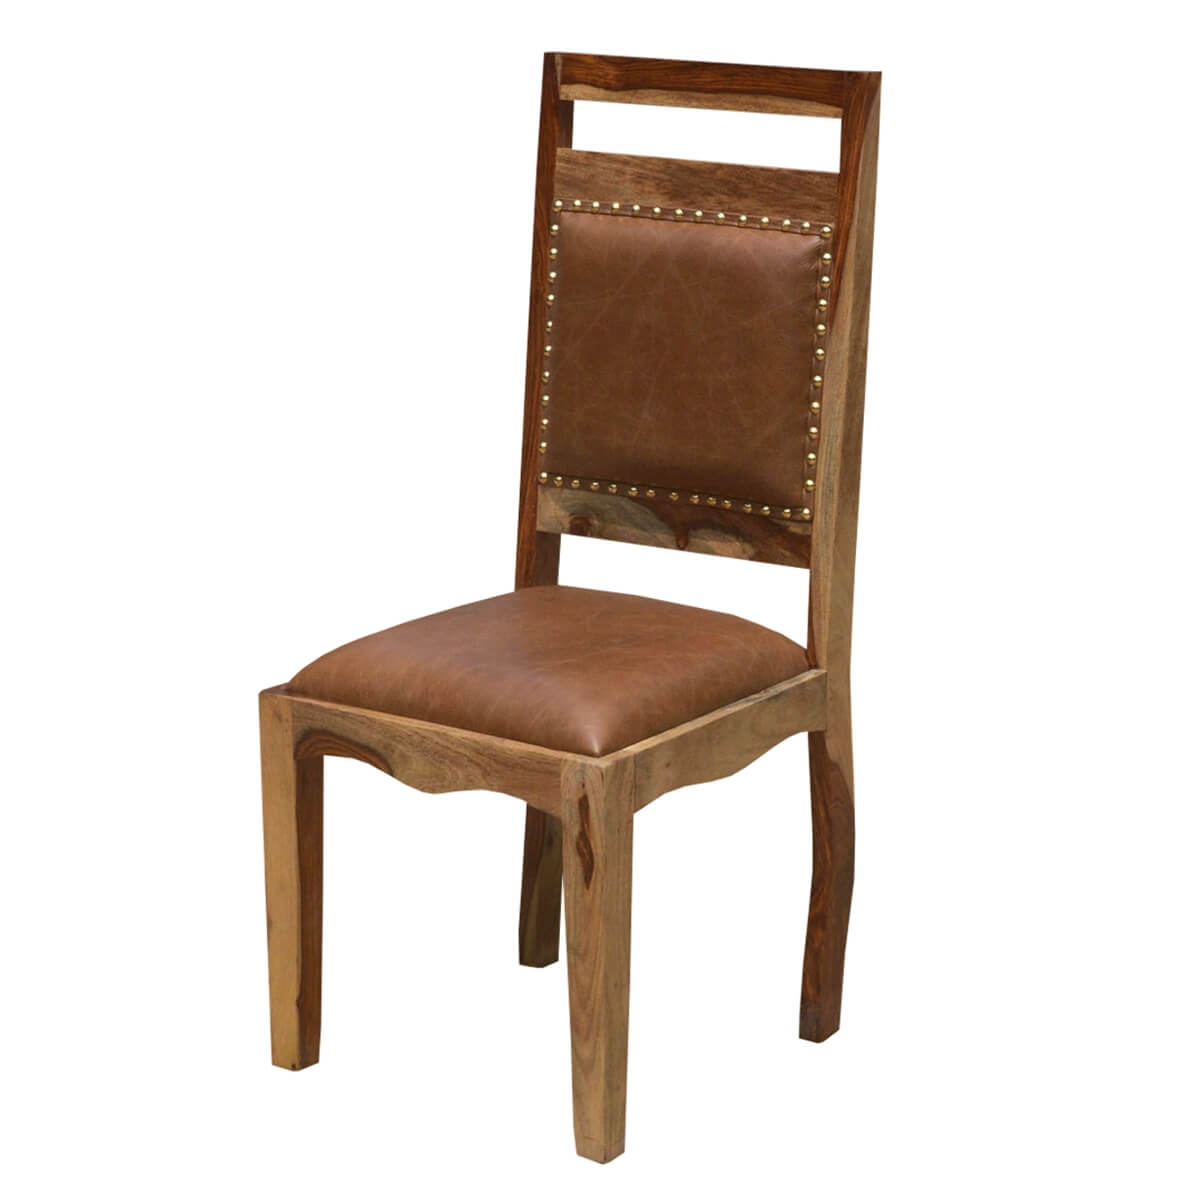 Rustic Wood Chairs Transitional Rustic Solid Wood And Leather Dining Chair